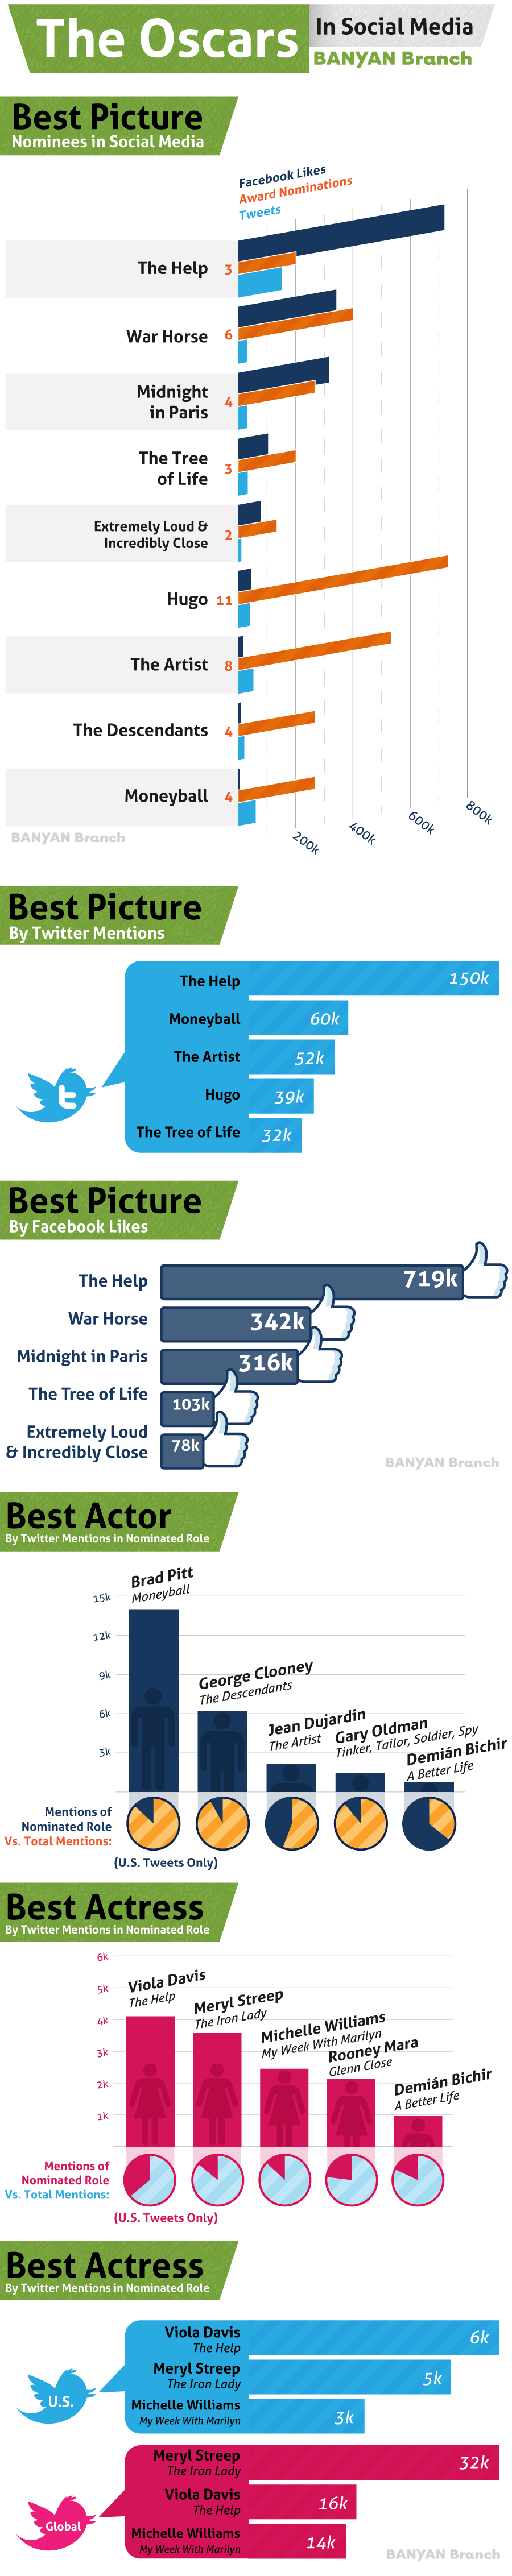 Academy awards 2012 Infographic